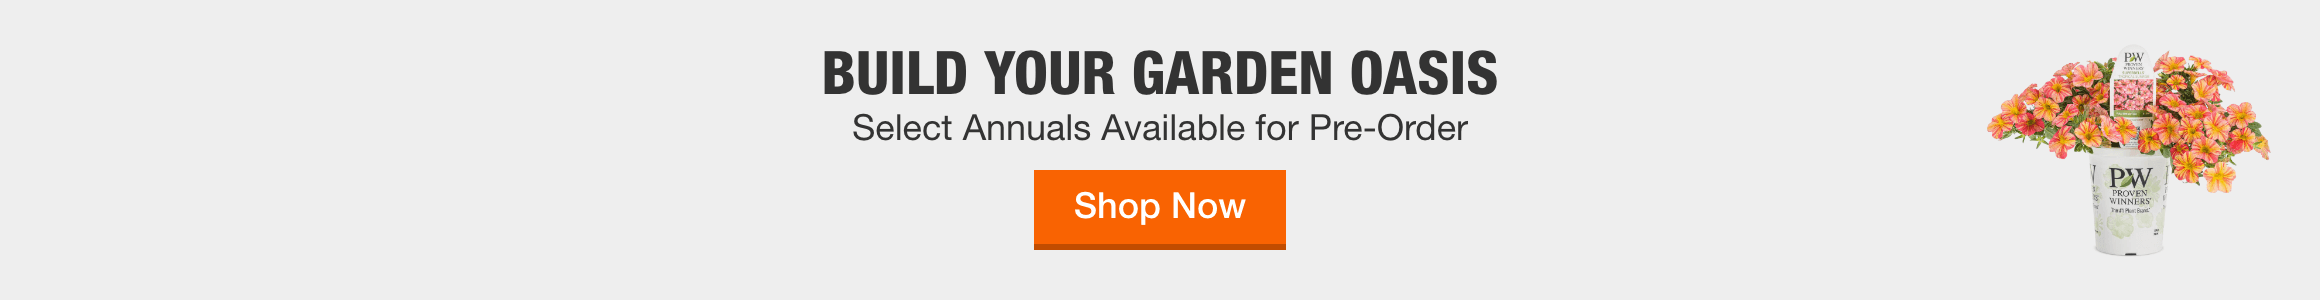 Build Your Garden Oasis - Select Annuals Available for Pre-Order. Shop Now